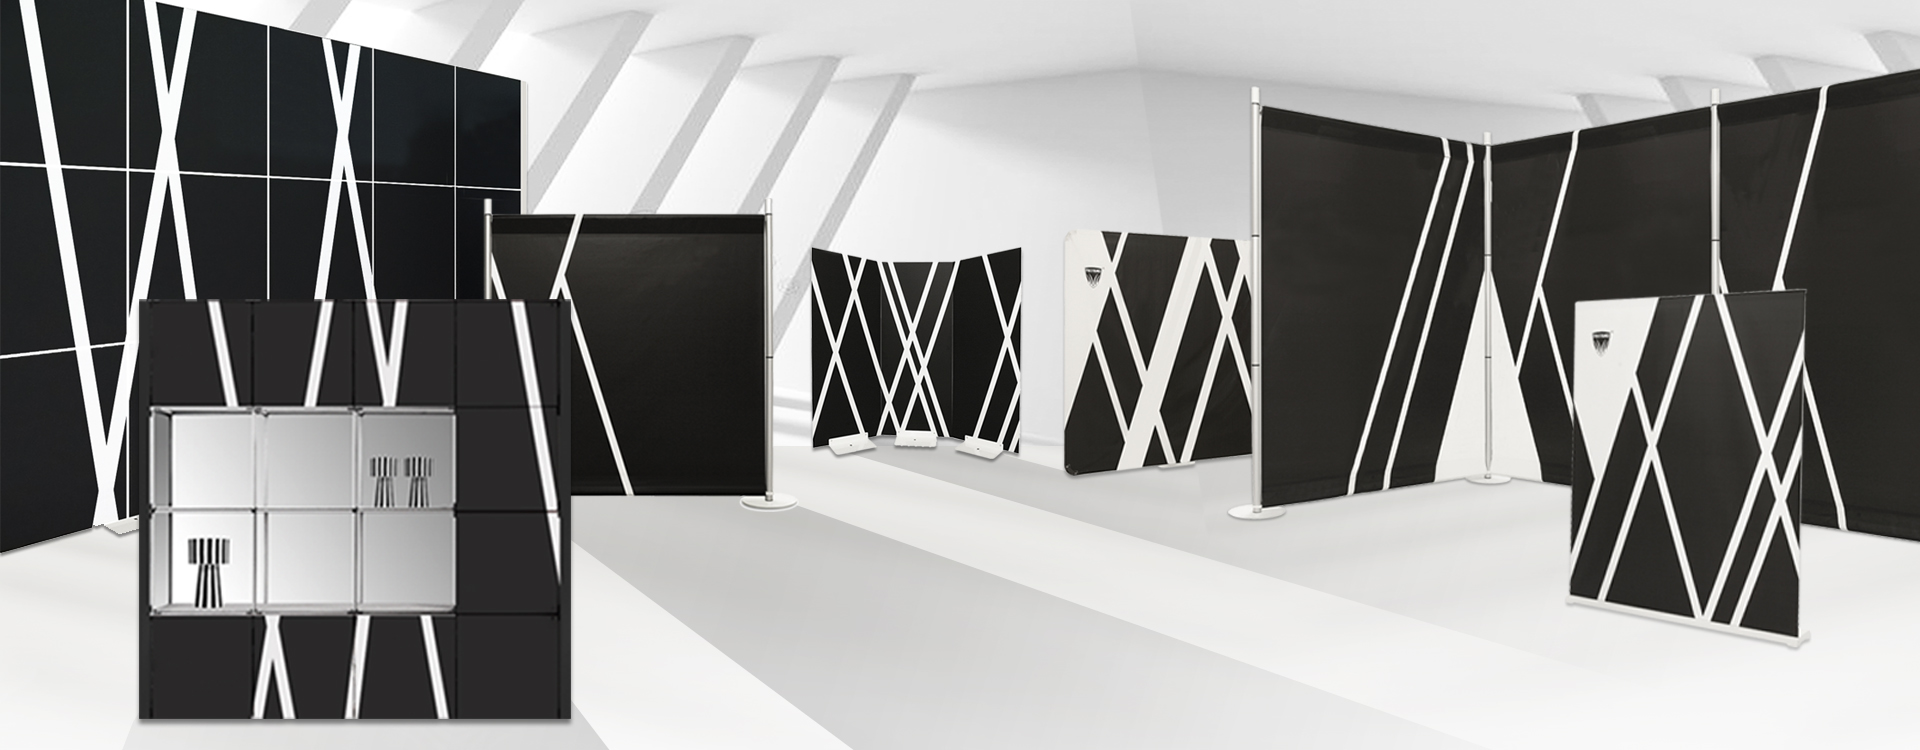 modular and modular walls for portable exhibition stands